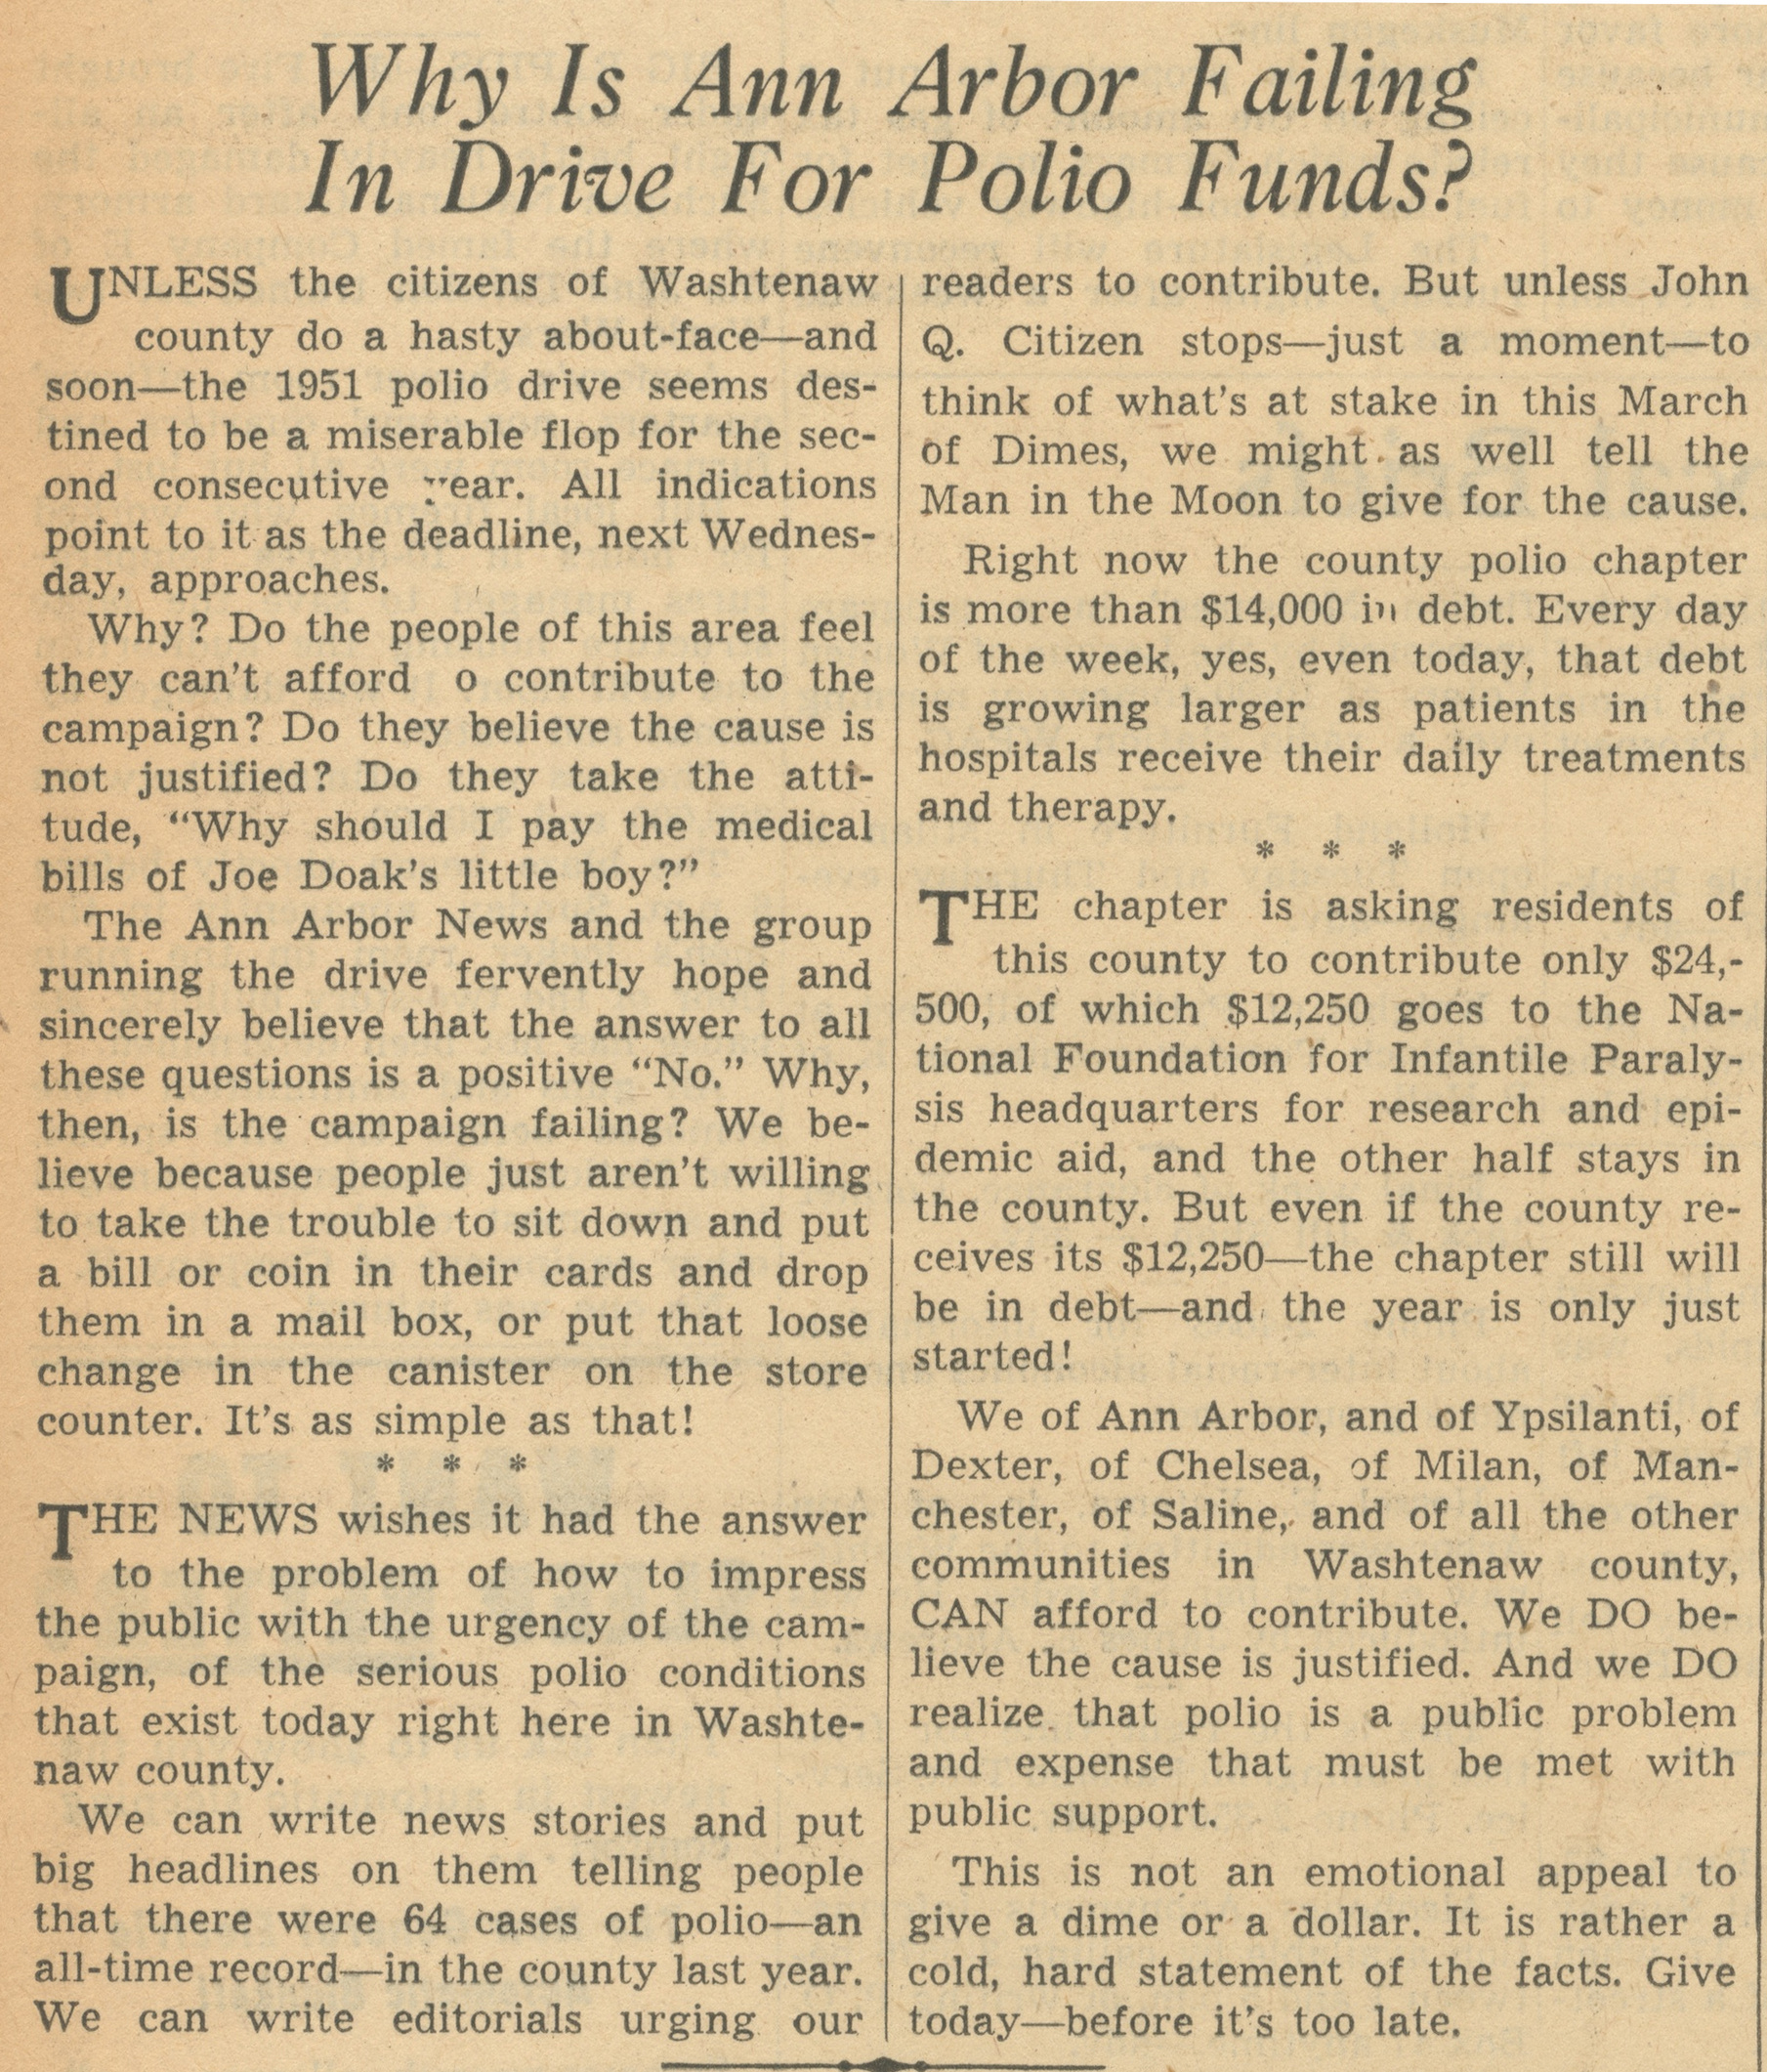 Why Is Ann Arbor Failing In Drive For Polio Funds? image